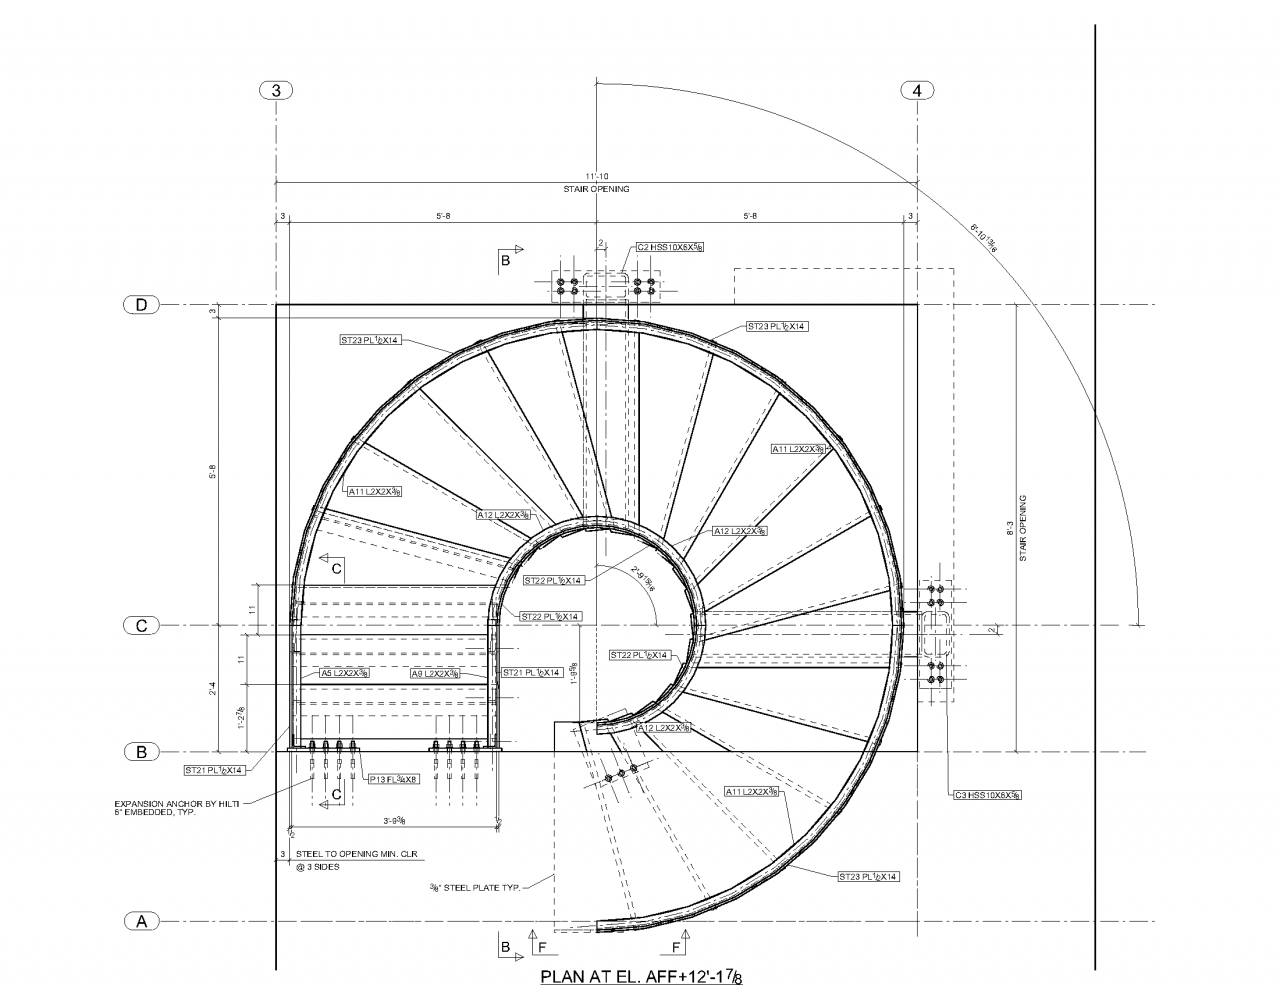 Circular stair 101 warren street new york ny plan Curved staircase design plans